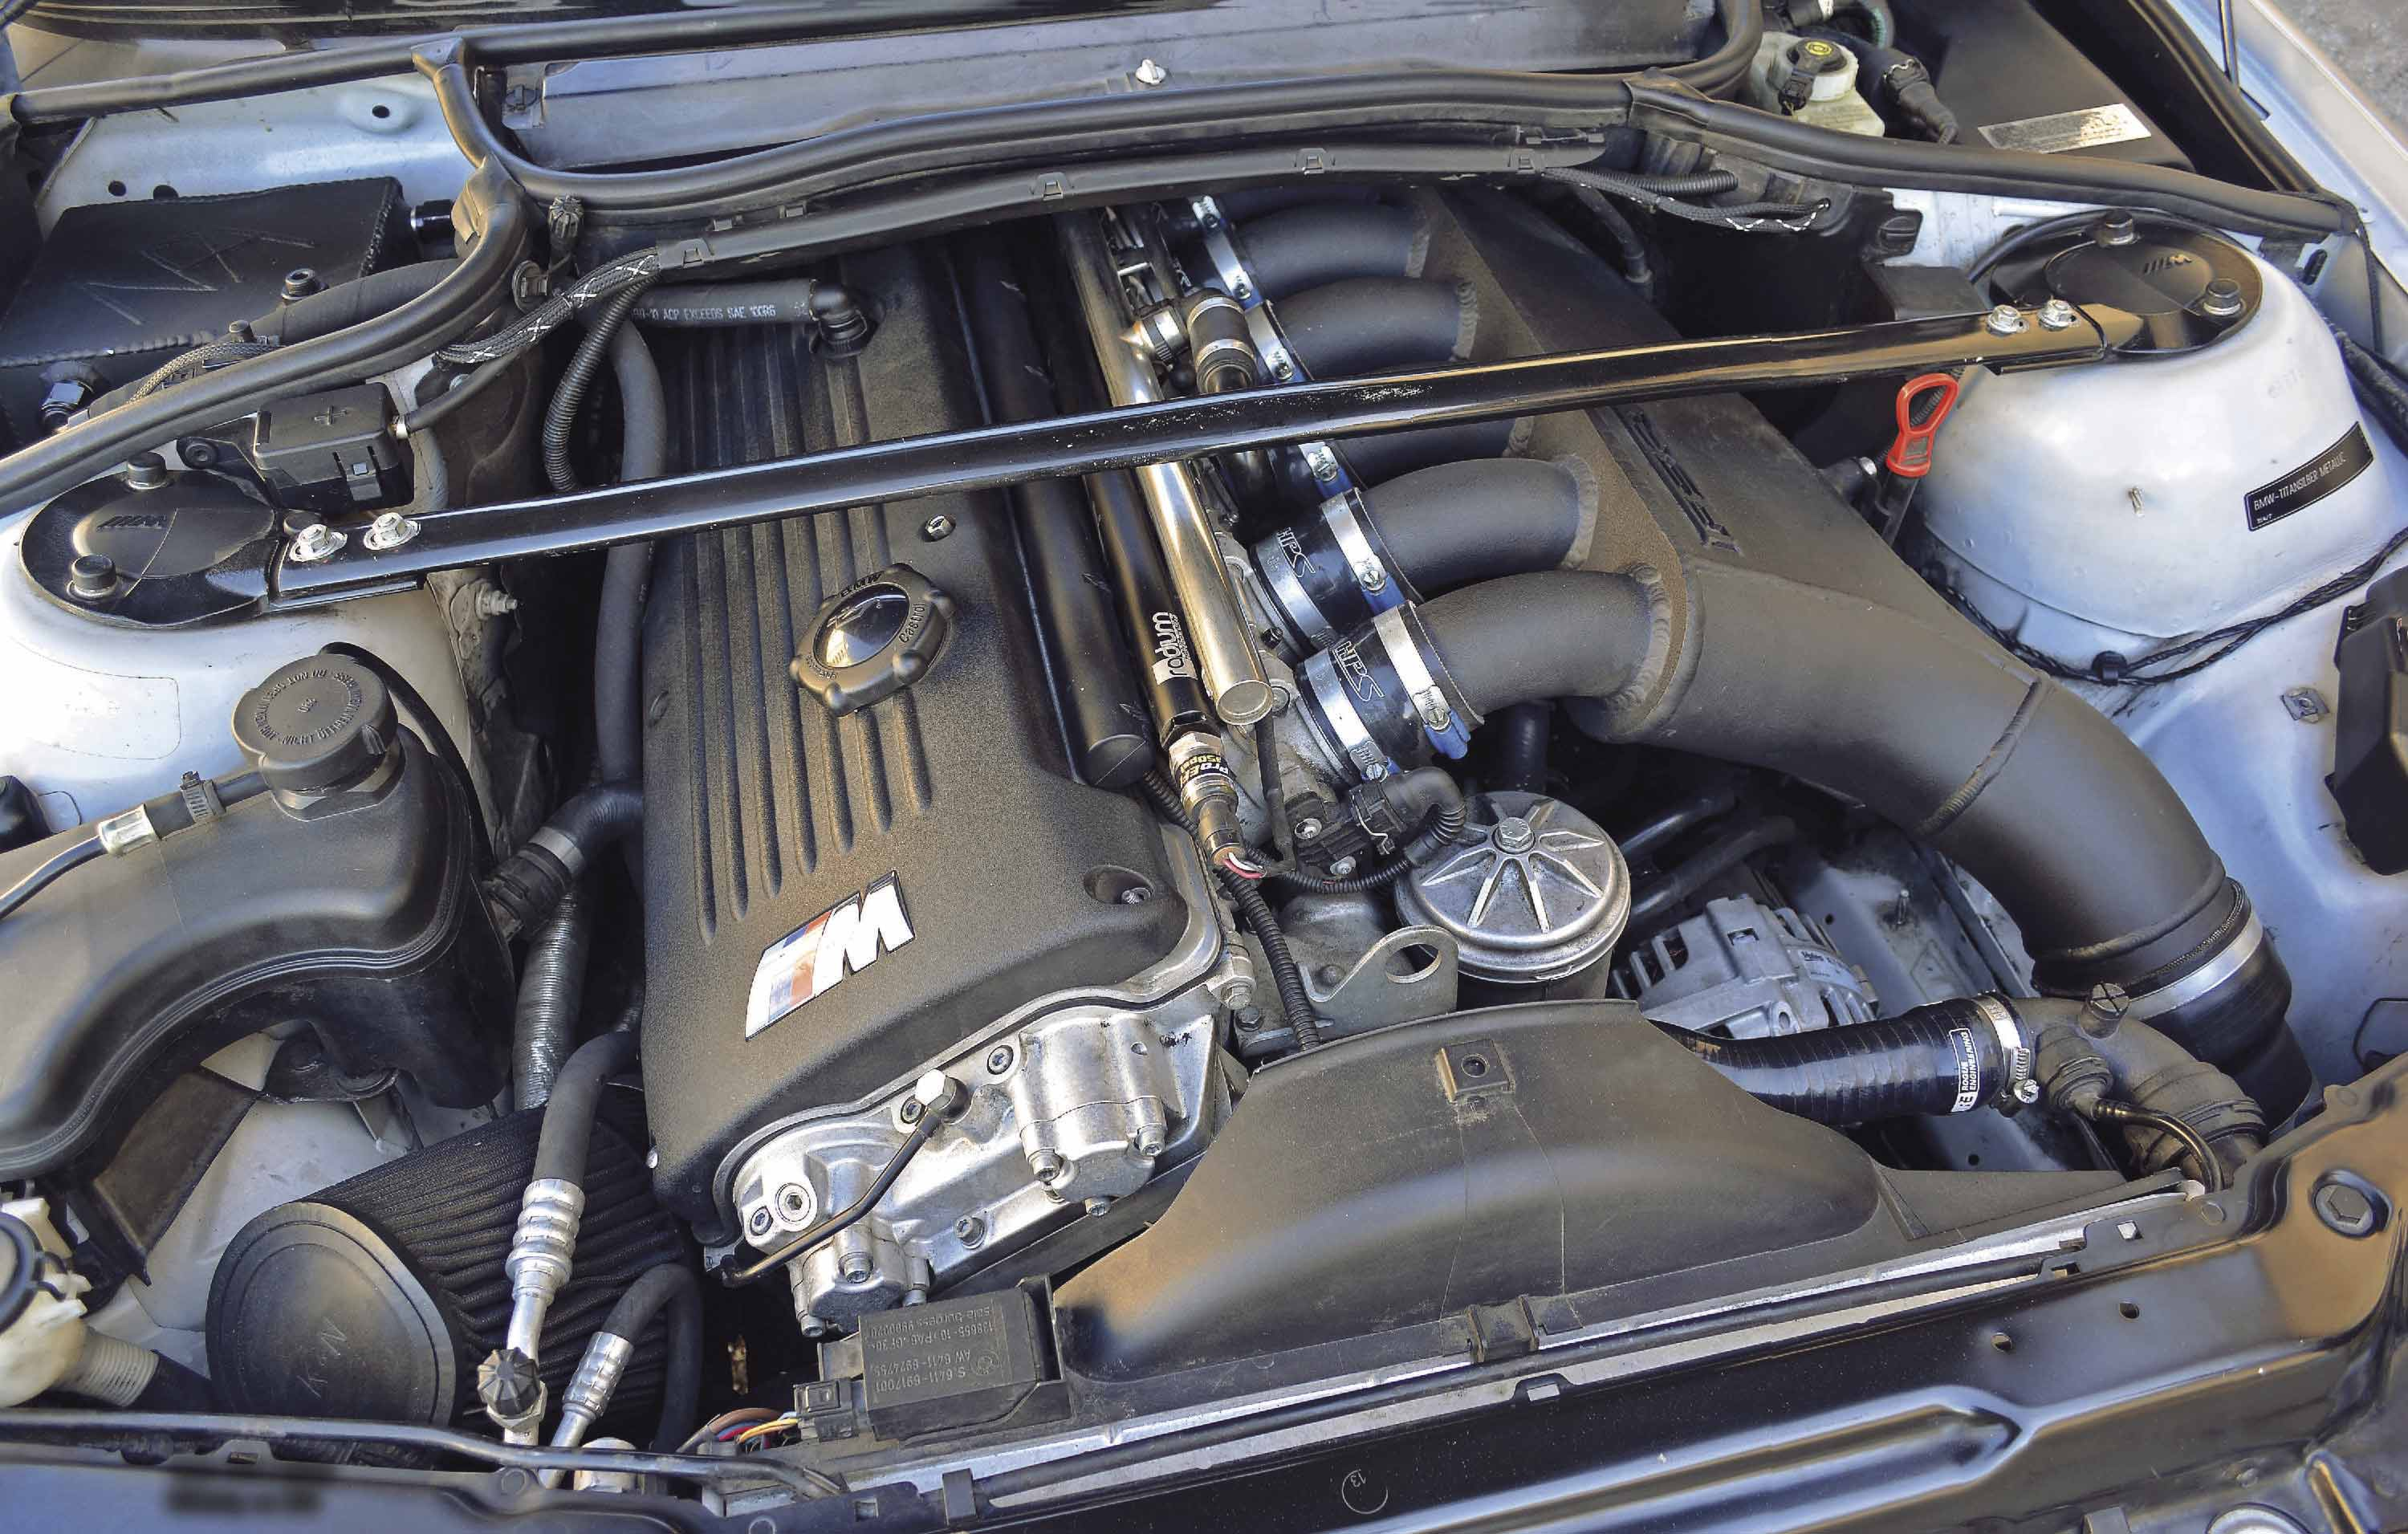 680whp turbo S54 BMW M3 E46 - Drive-My Blogs - Drive